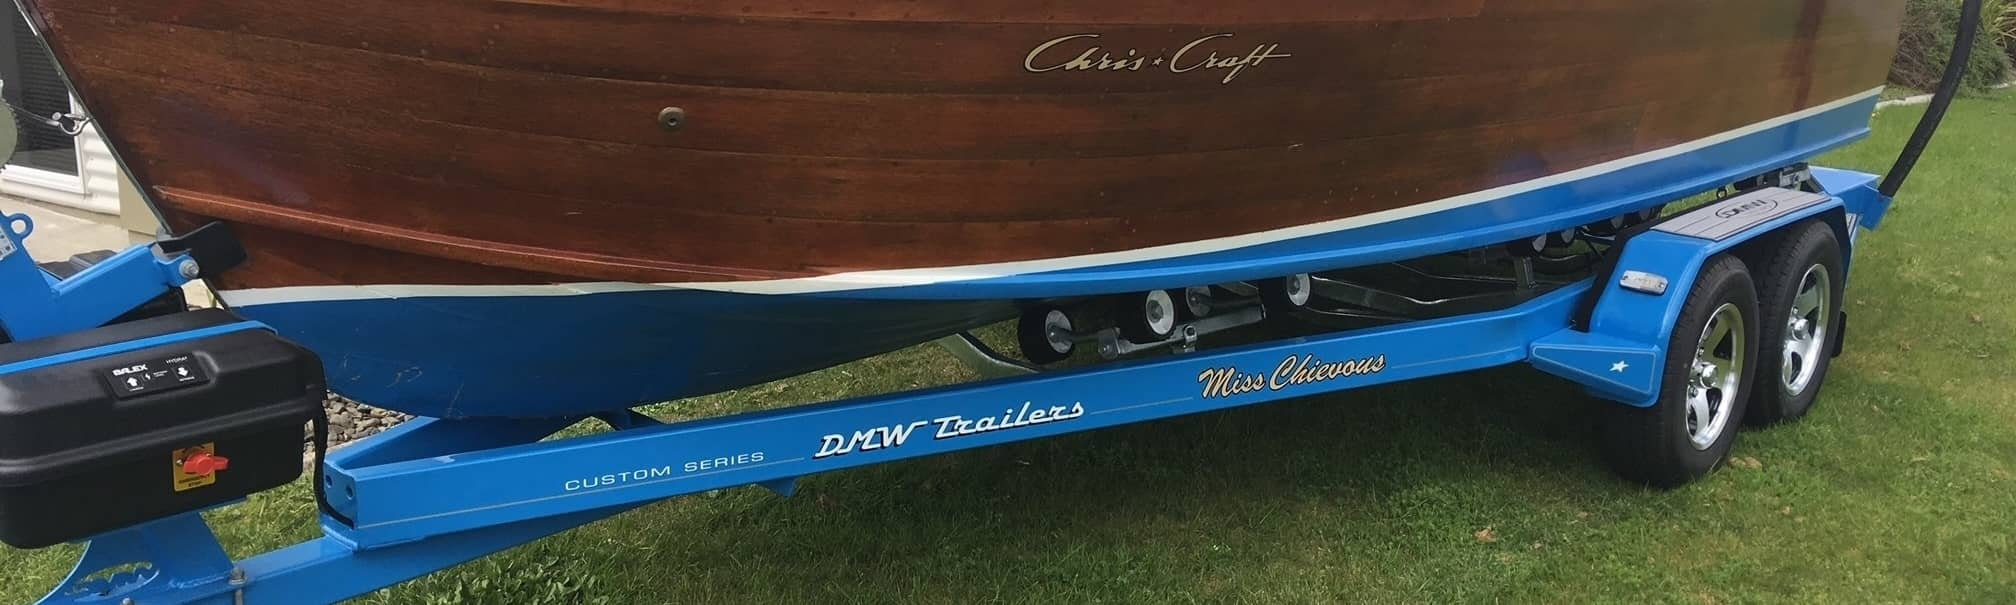 DMW Trailers Custom Chriscraft